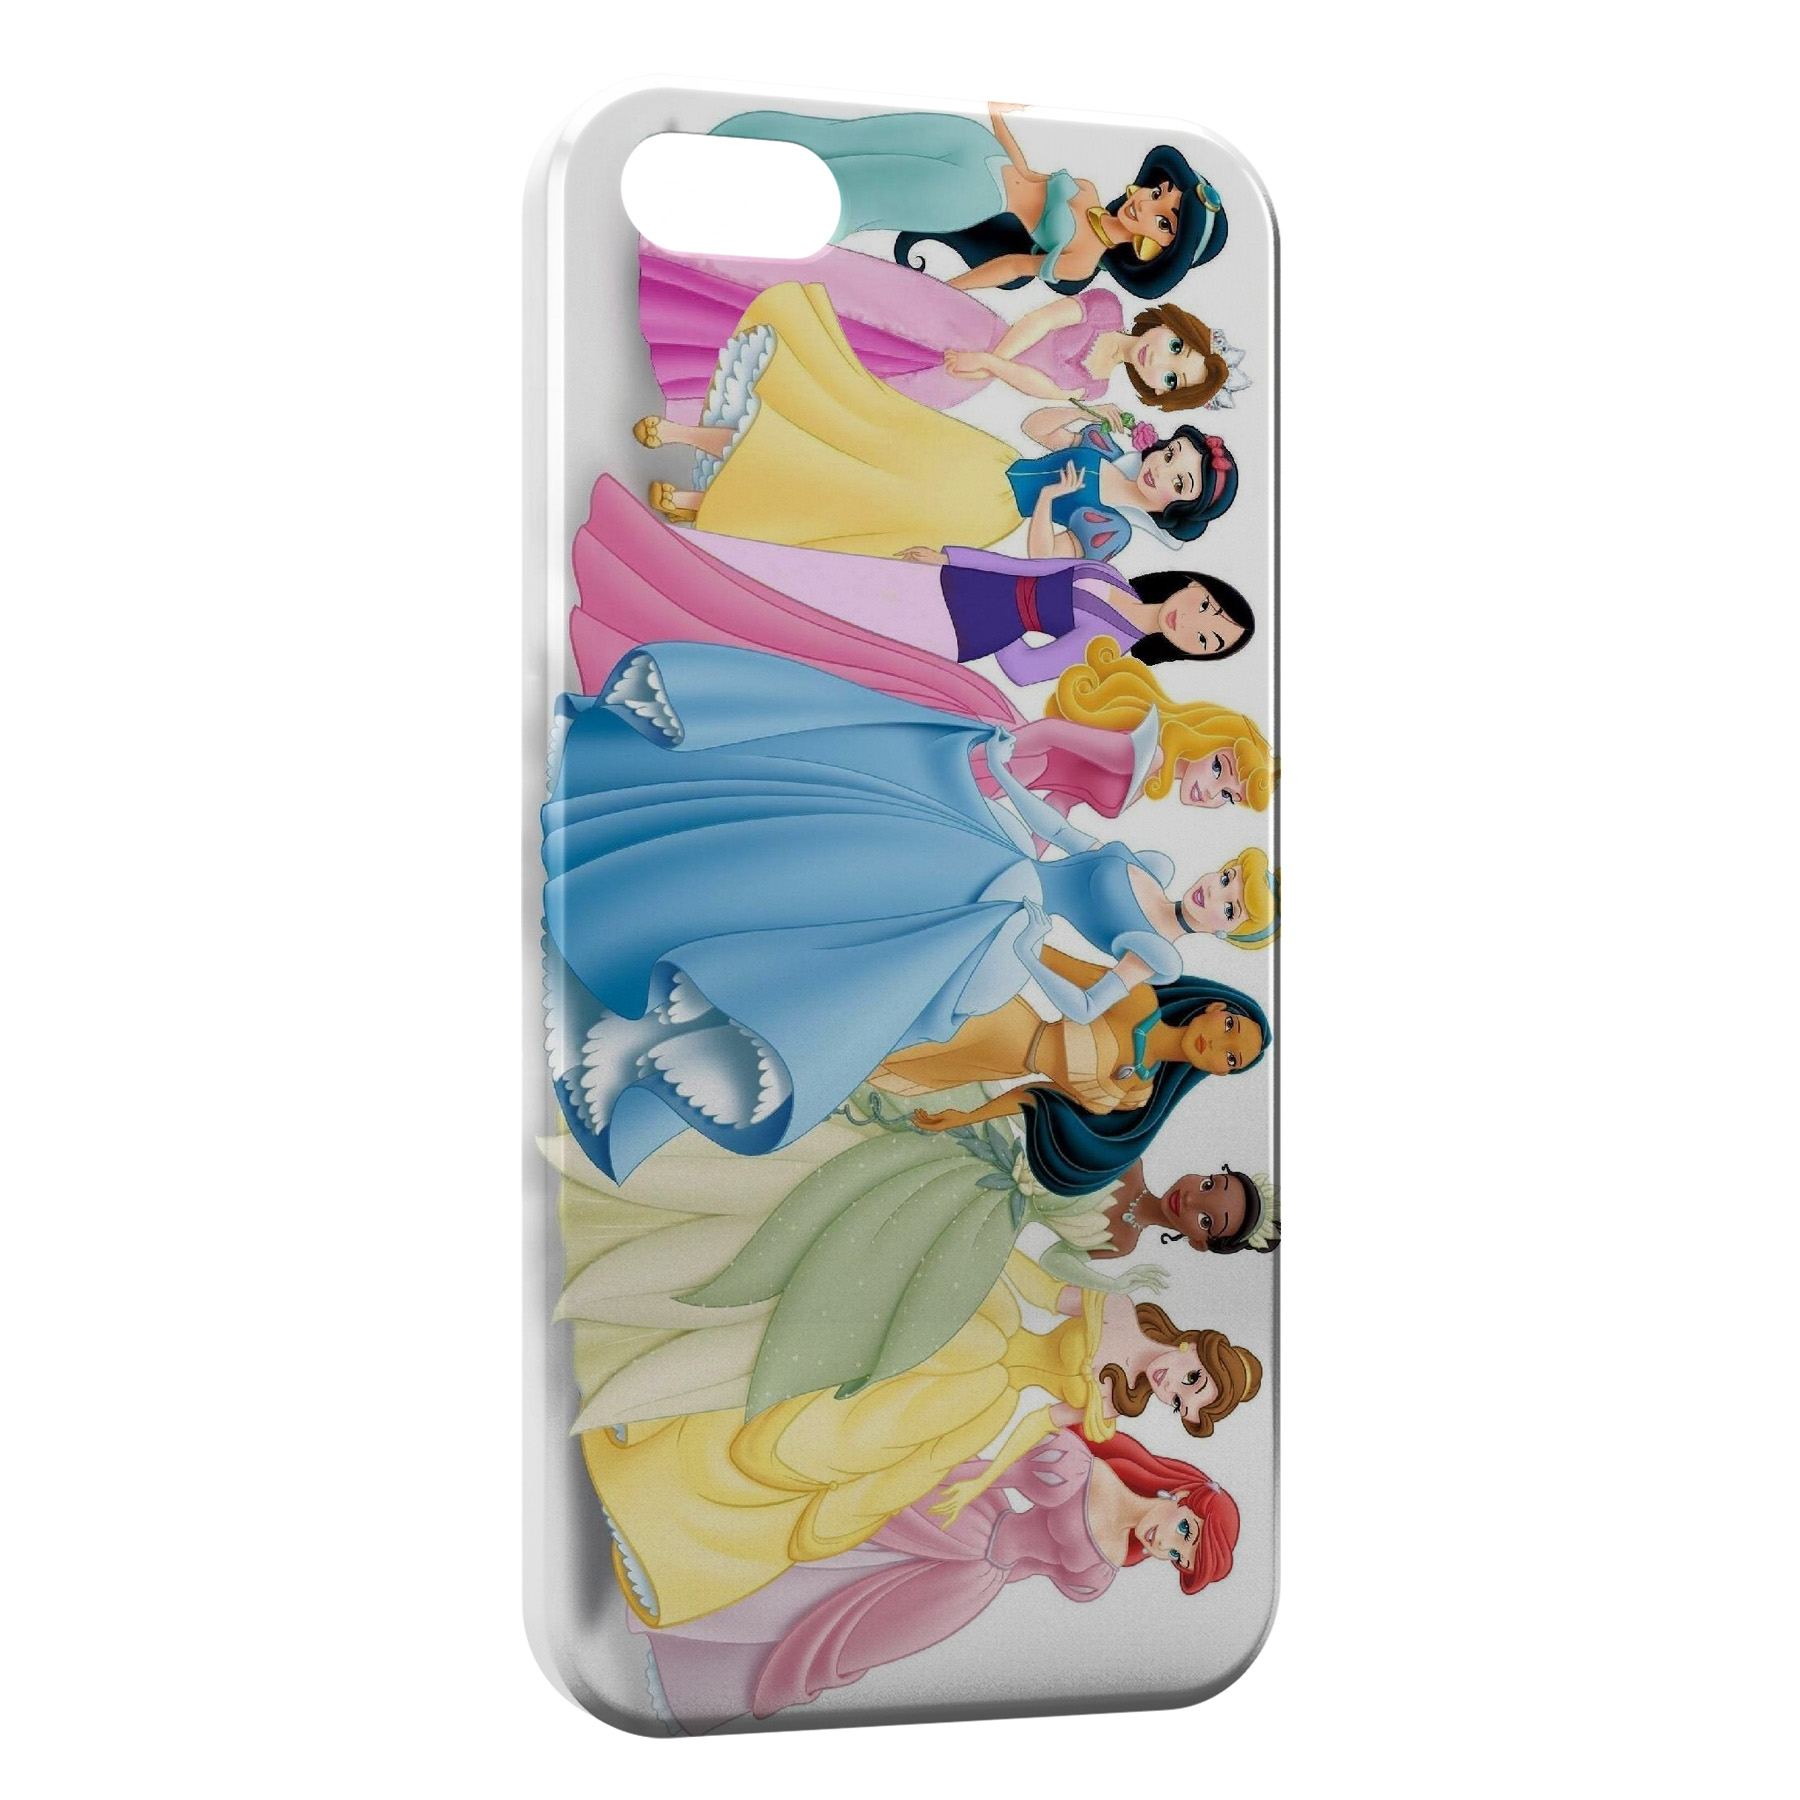 Coque iPhone 6 6S Disney Princess